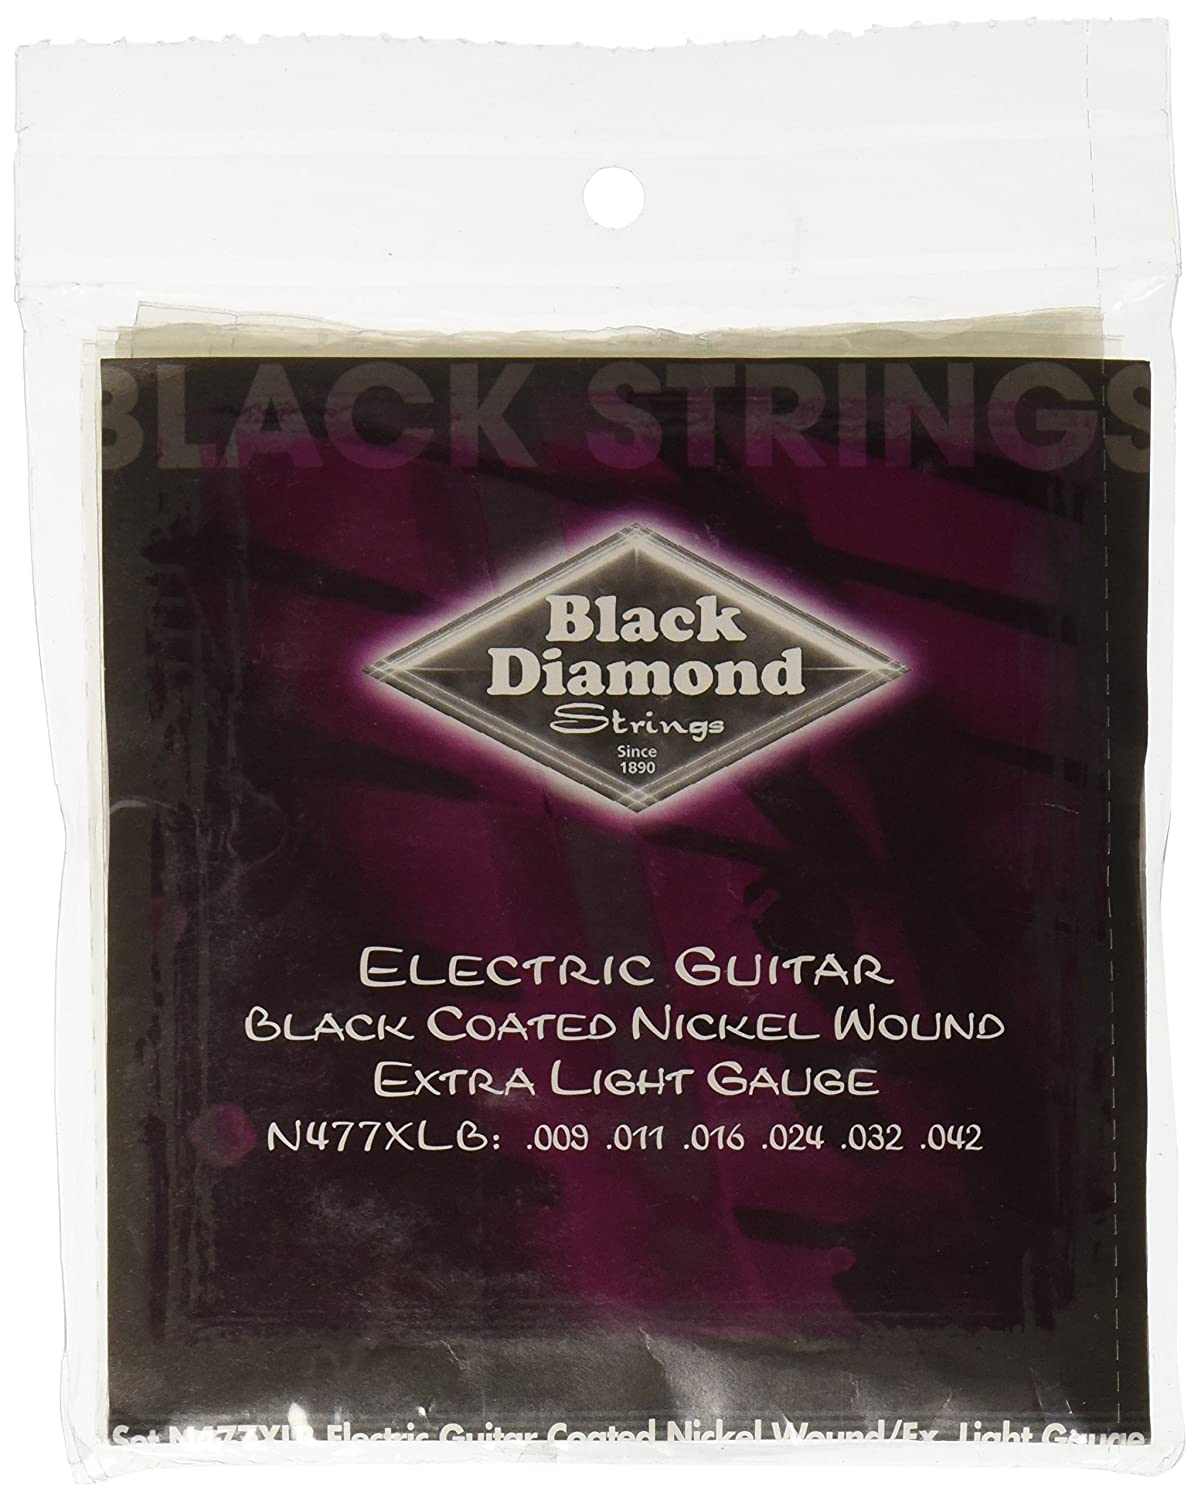 Amazon.com: Black Diamond N477XLB Black Coated Nickel Wound Electric Guitar Strings, Extra Light: Musical Instruments